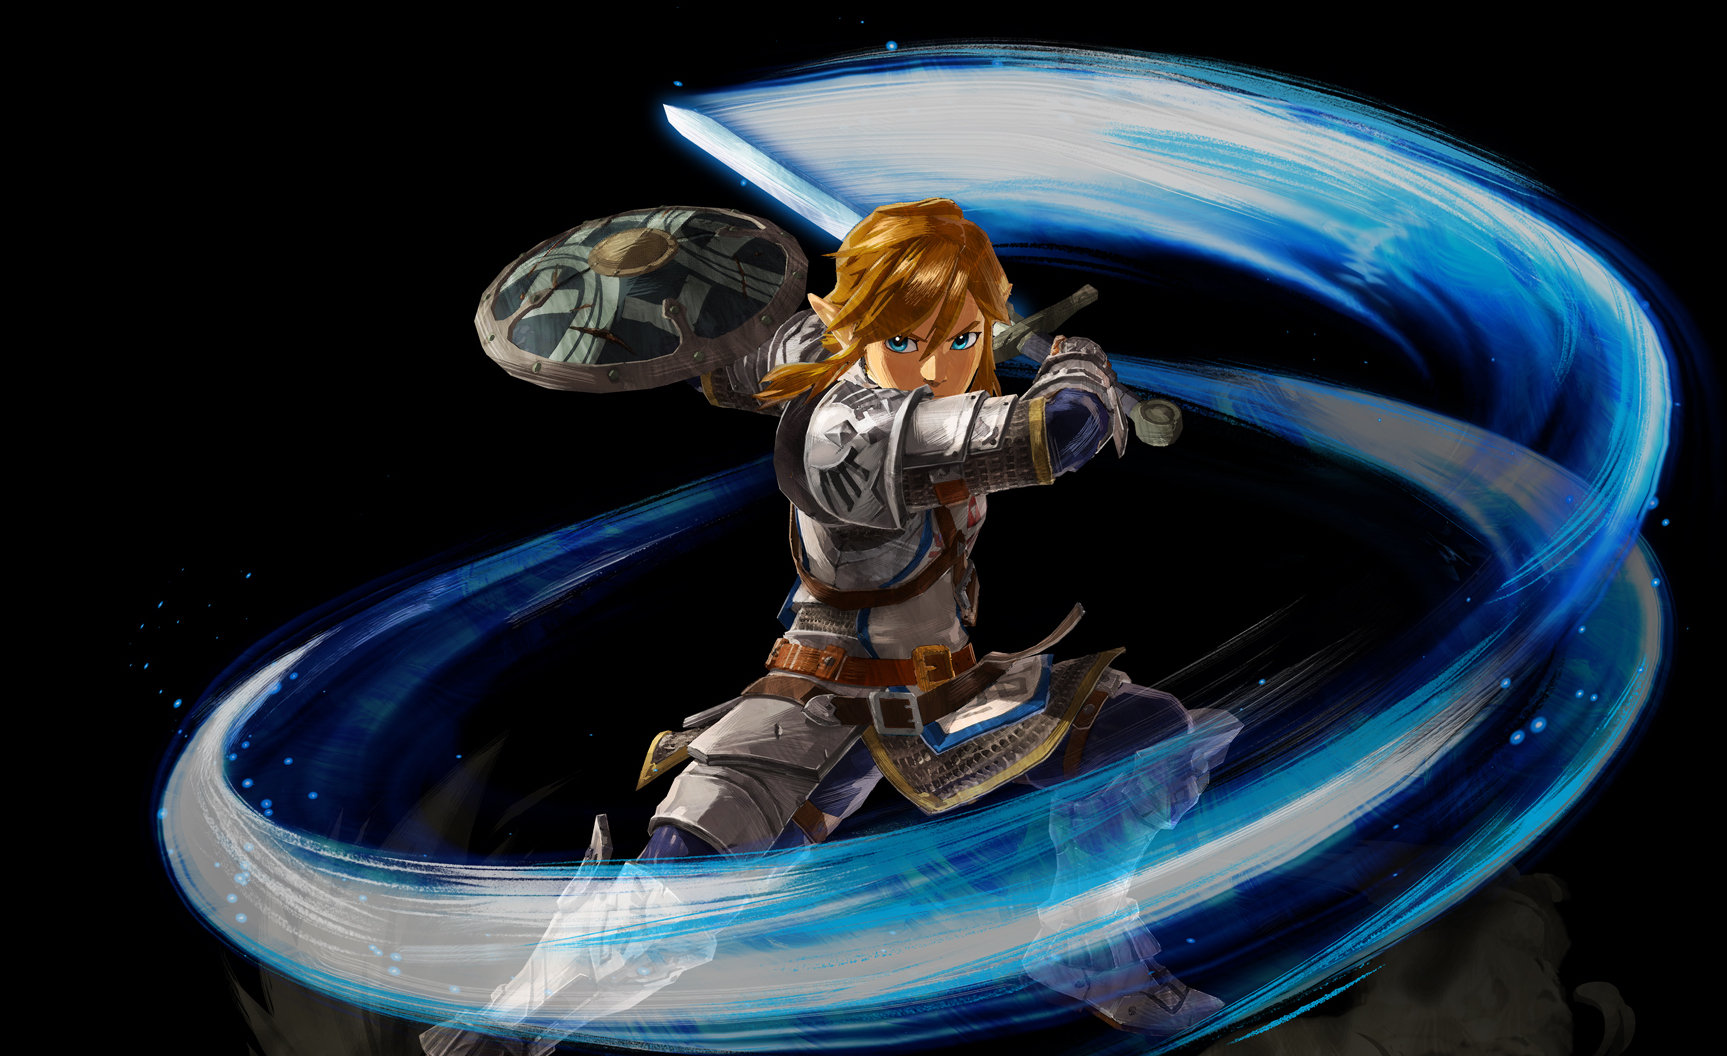 Link swings a sword in Age of Calamity.